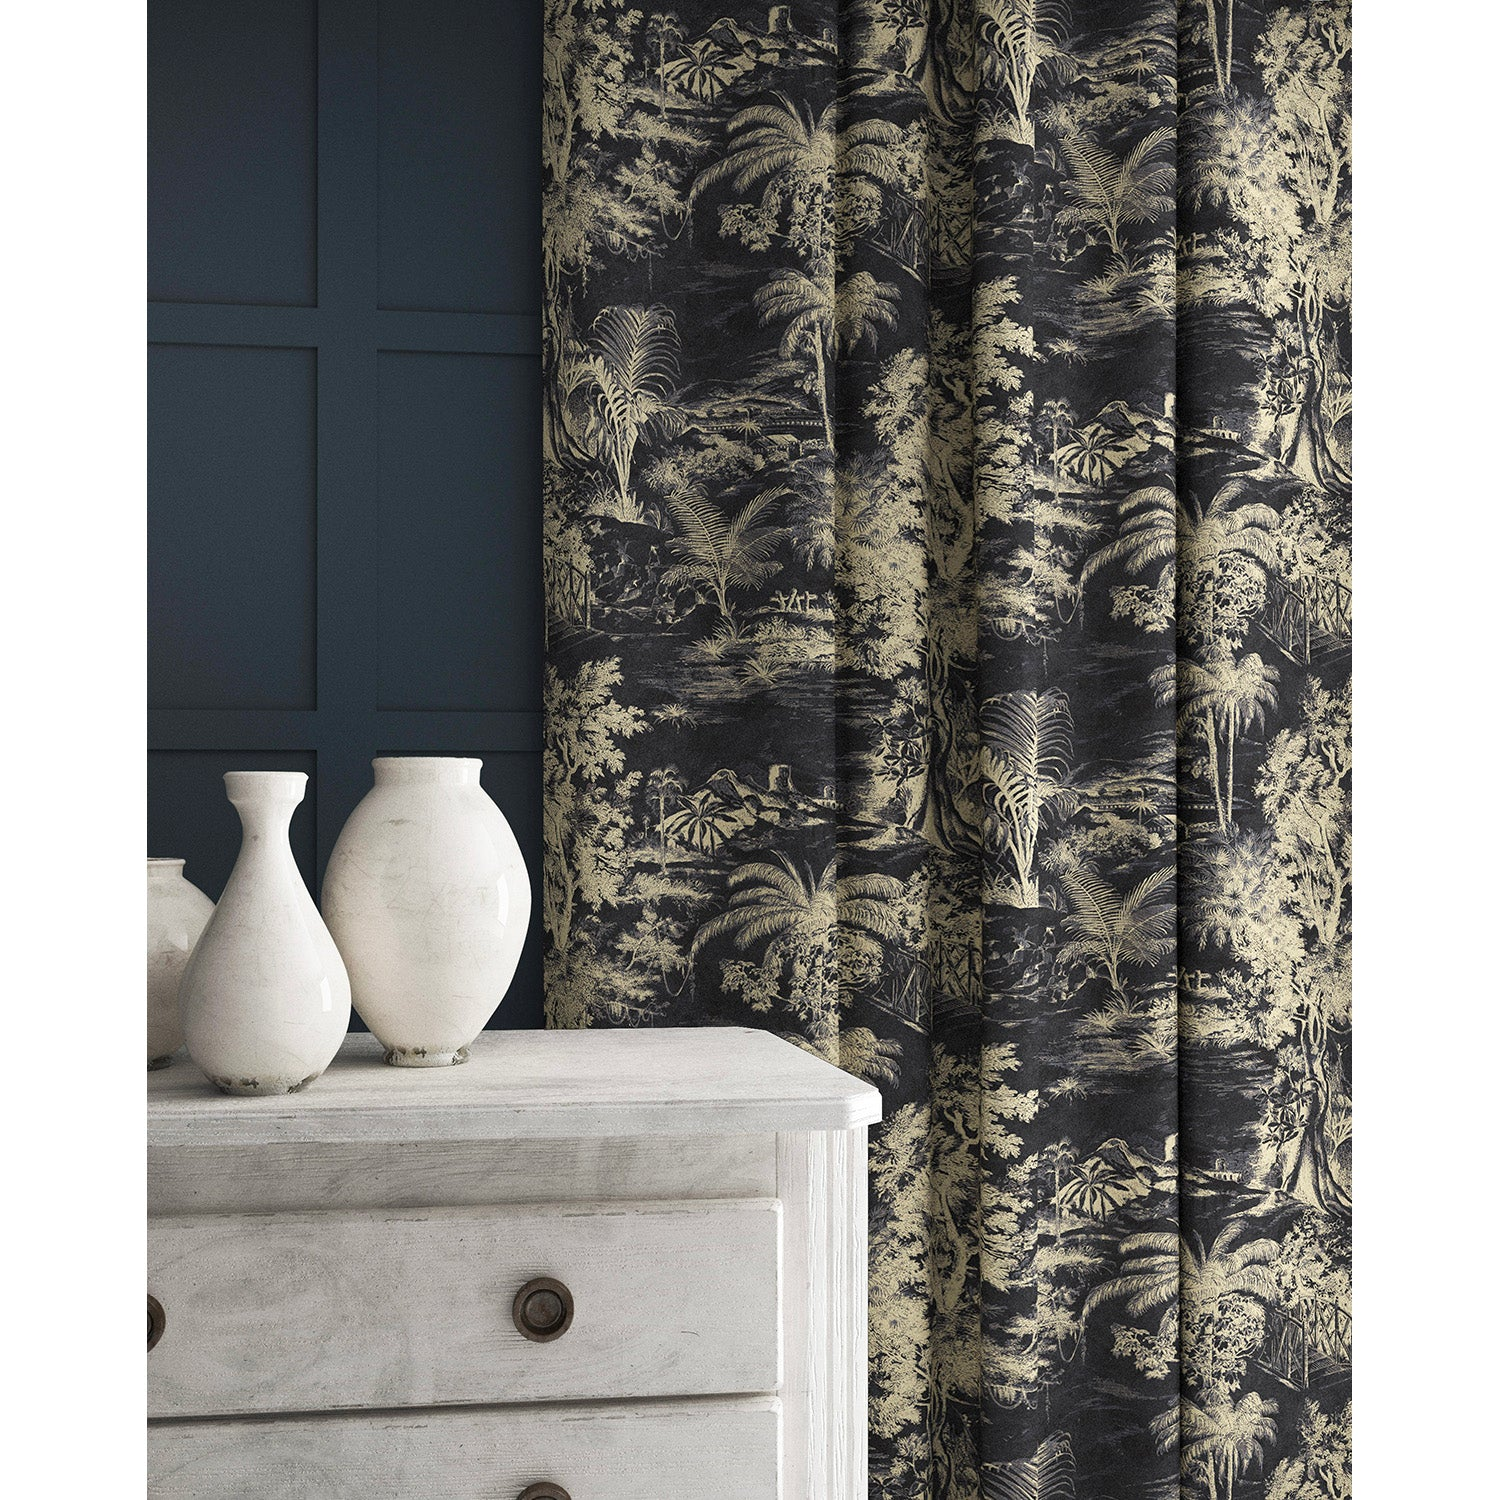 Velvet curtain in a grey and white velvet fabric with stain resistant finish and palm tree design